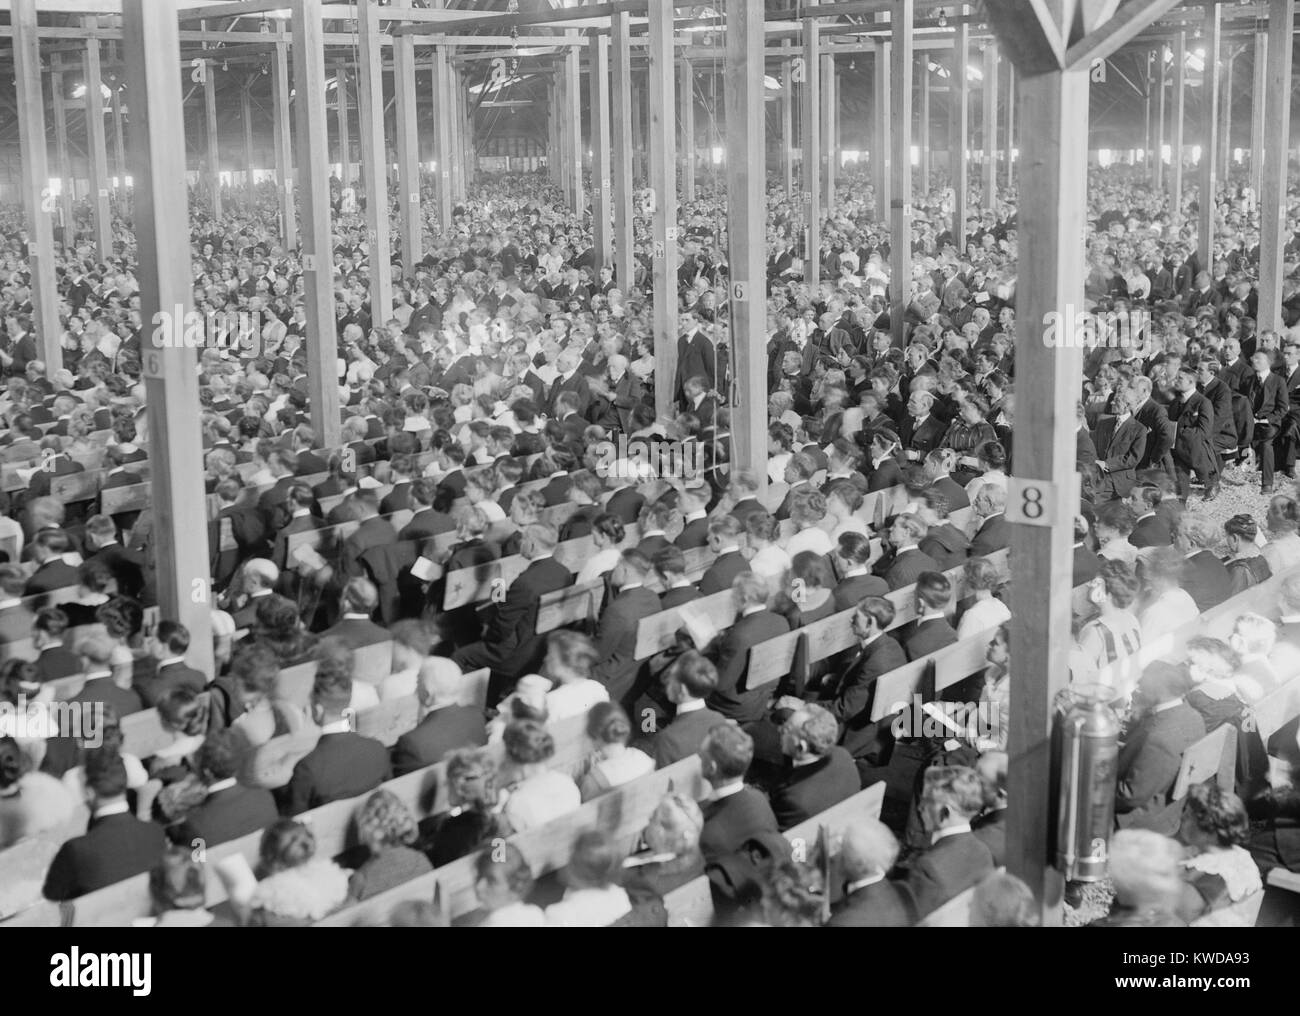 Evangelist Billy Sunday's Tabernacle during a revival in New York City, 1917. The huge tent accommodated 18,000 - Stock Image